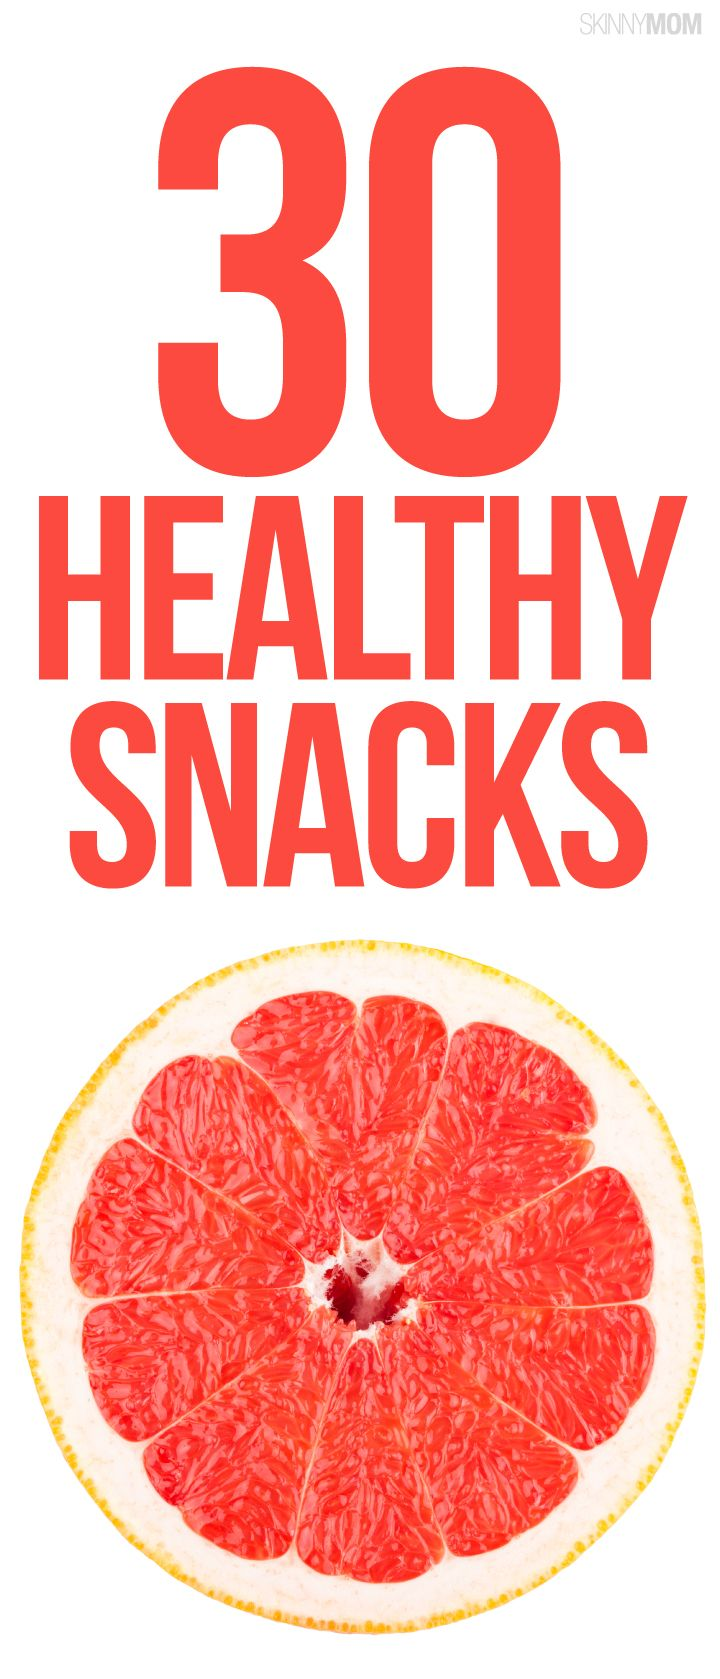 Get a month's worth of healthy snack ideas!